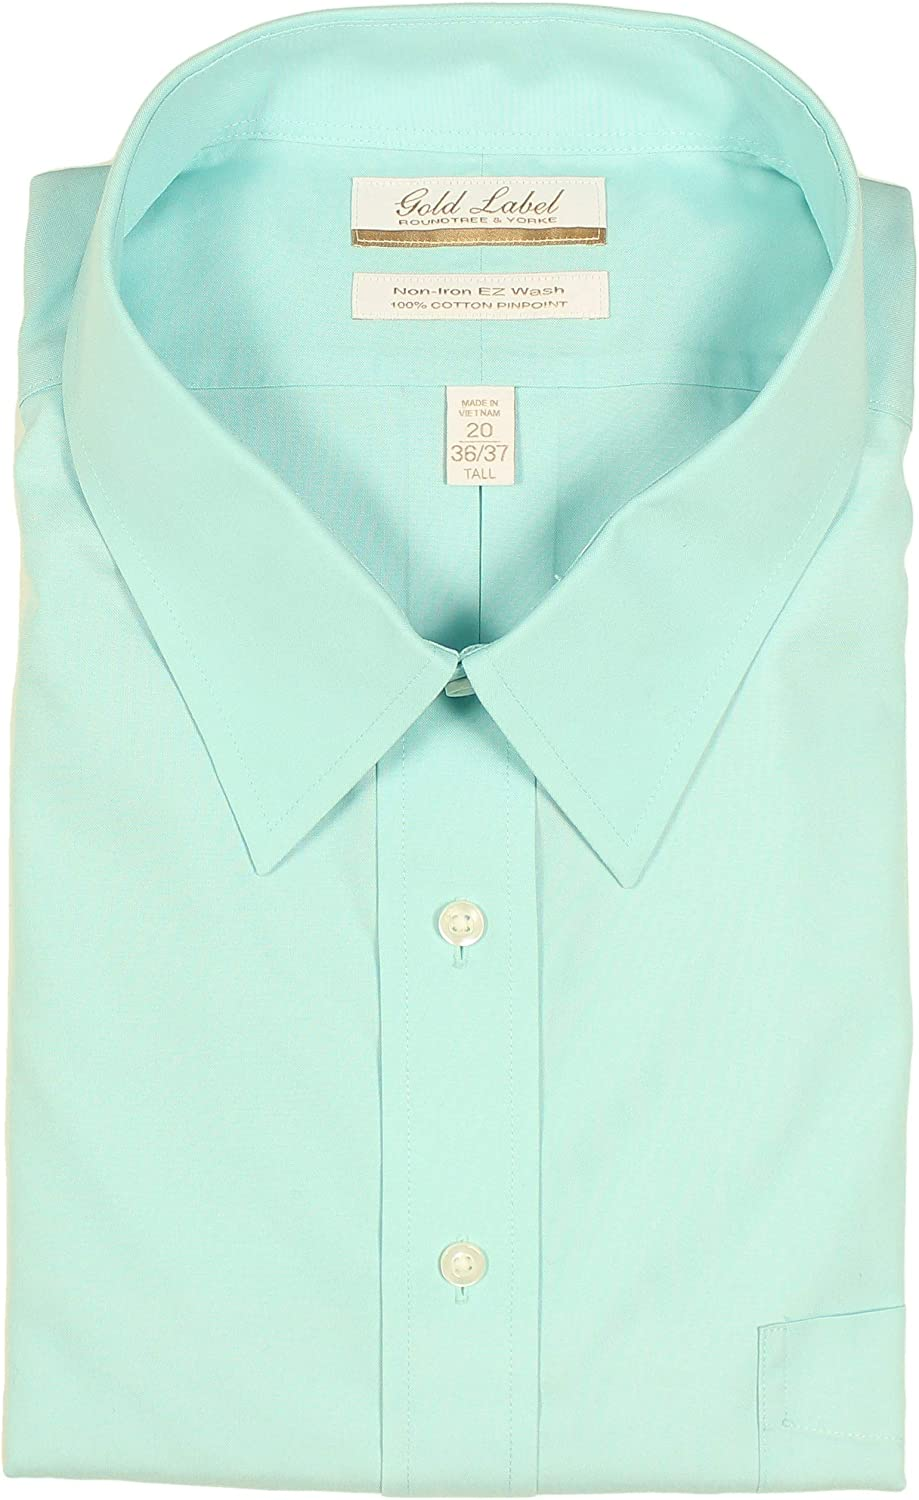 Gold Label Men's Big and Tall Non-Iron Wrinkle Resistant Easy-Care Pinpoint Dress Shirt, Point Collar